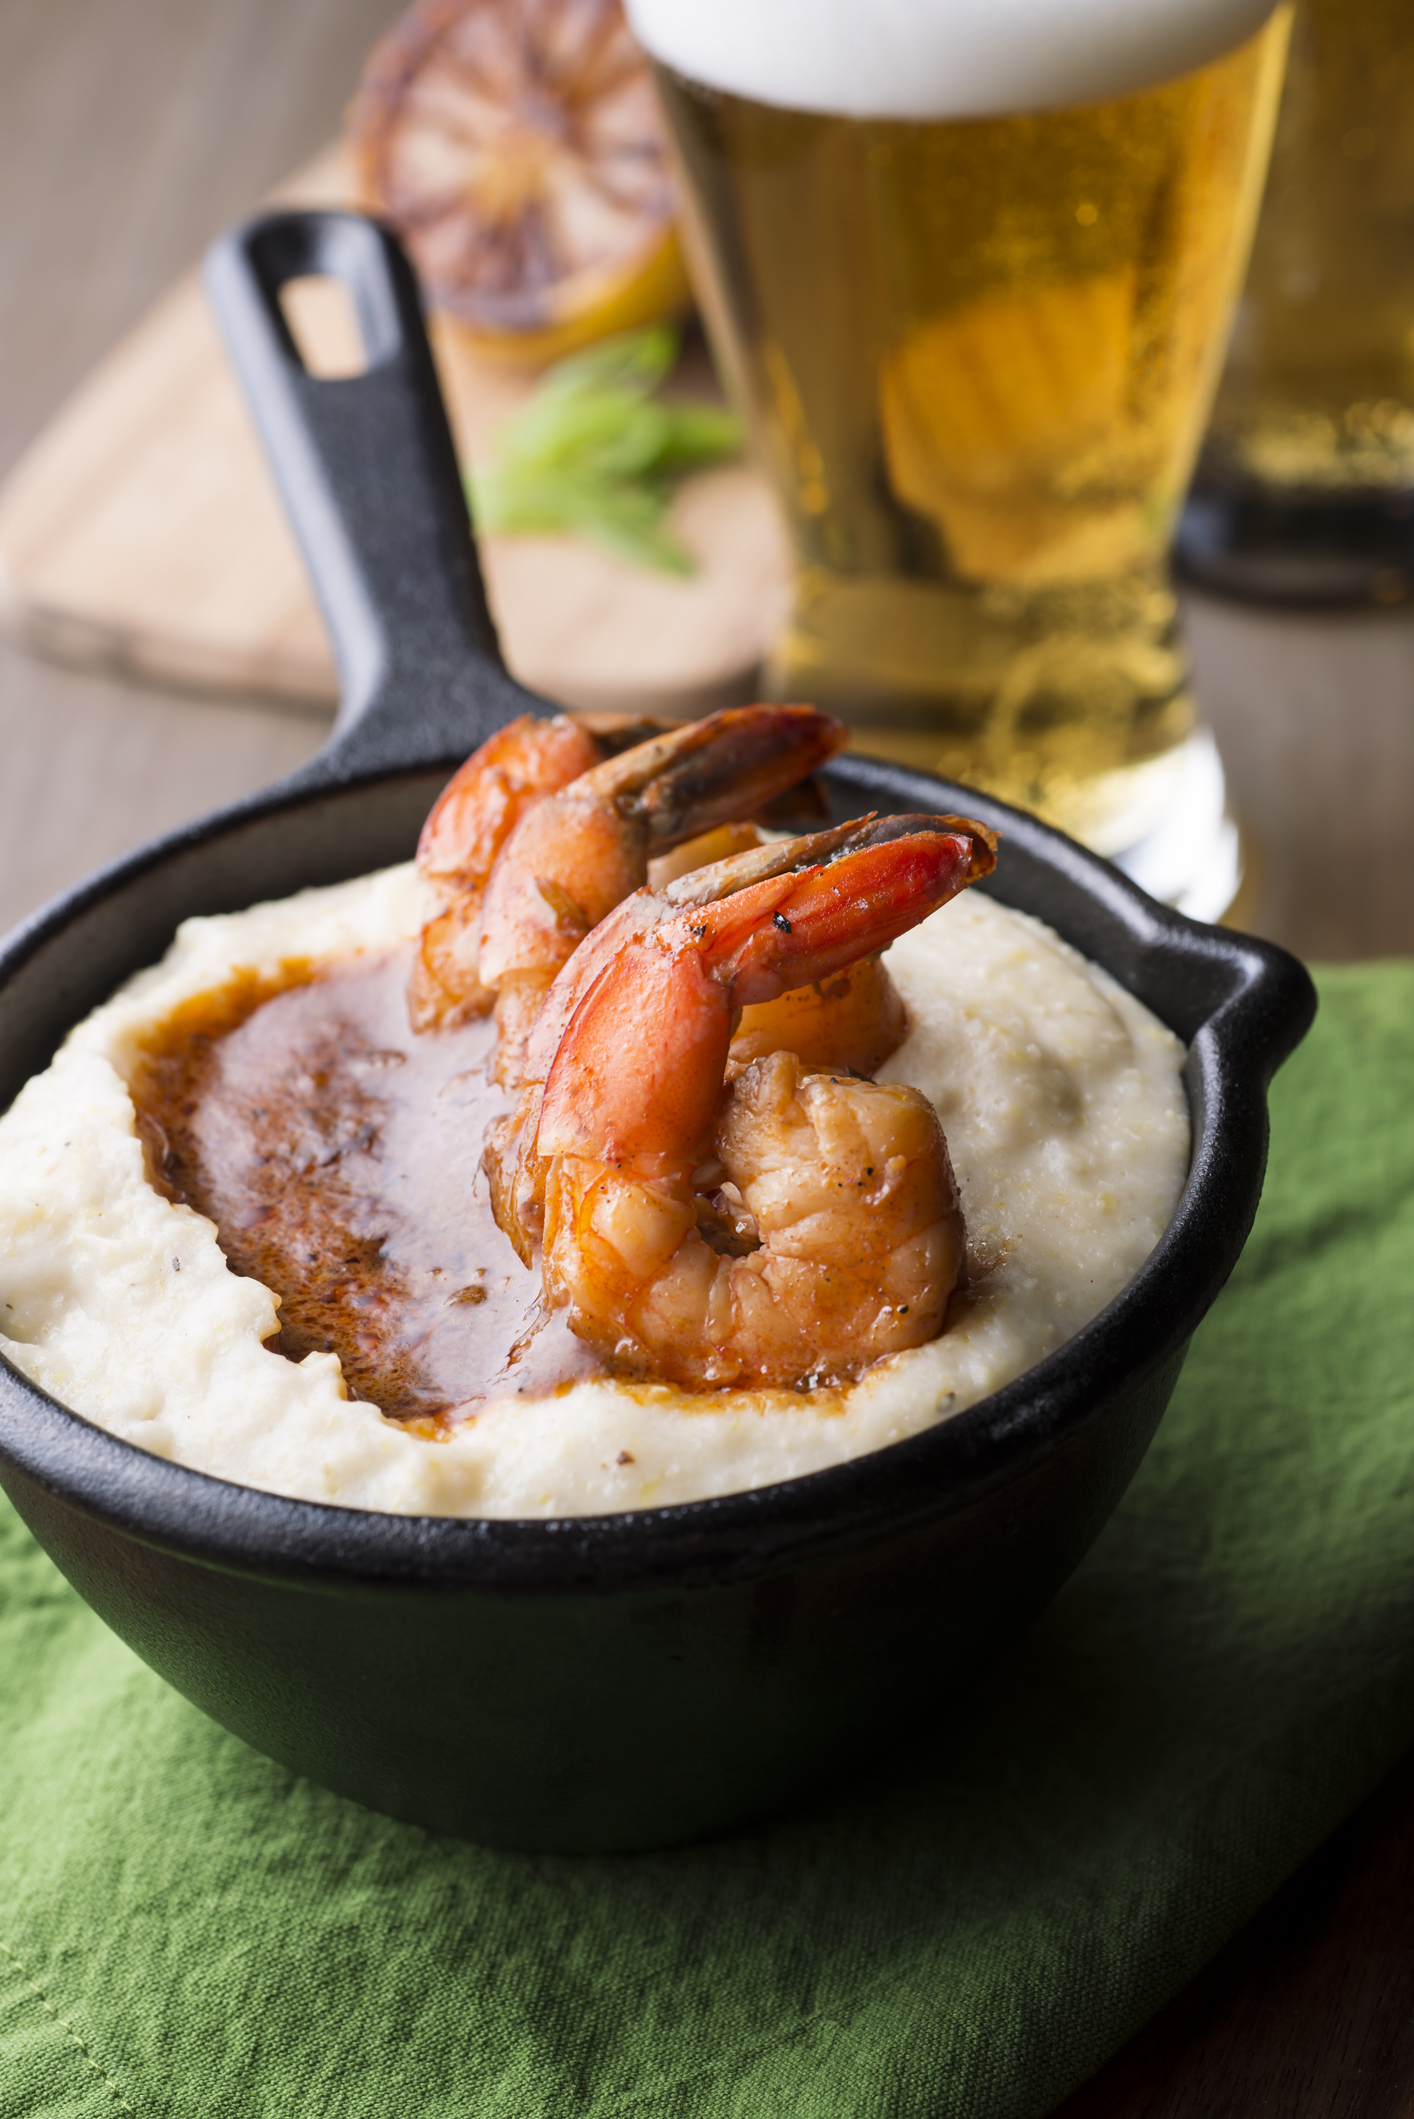 You'll no doubt get your fill of soul food, but with Albany's eclectic dining options, little is left to be desired. - Including some southern favorites like shrimp and grits.